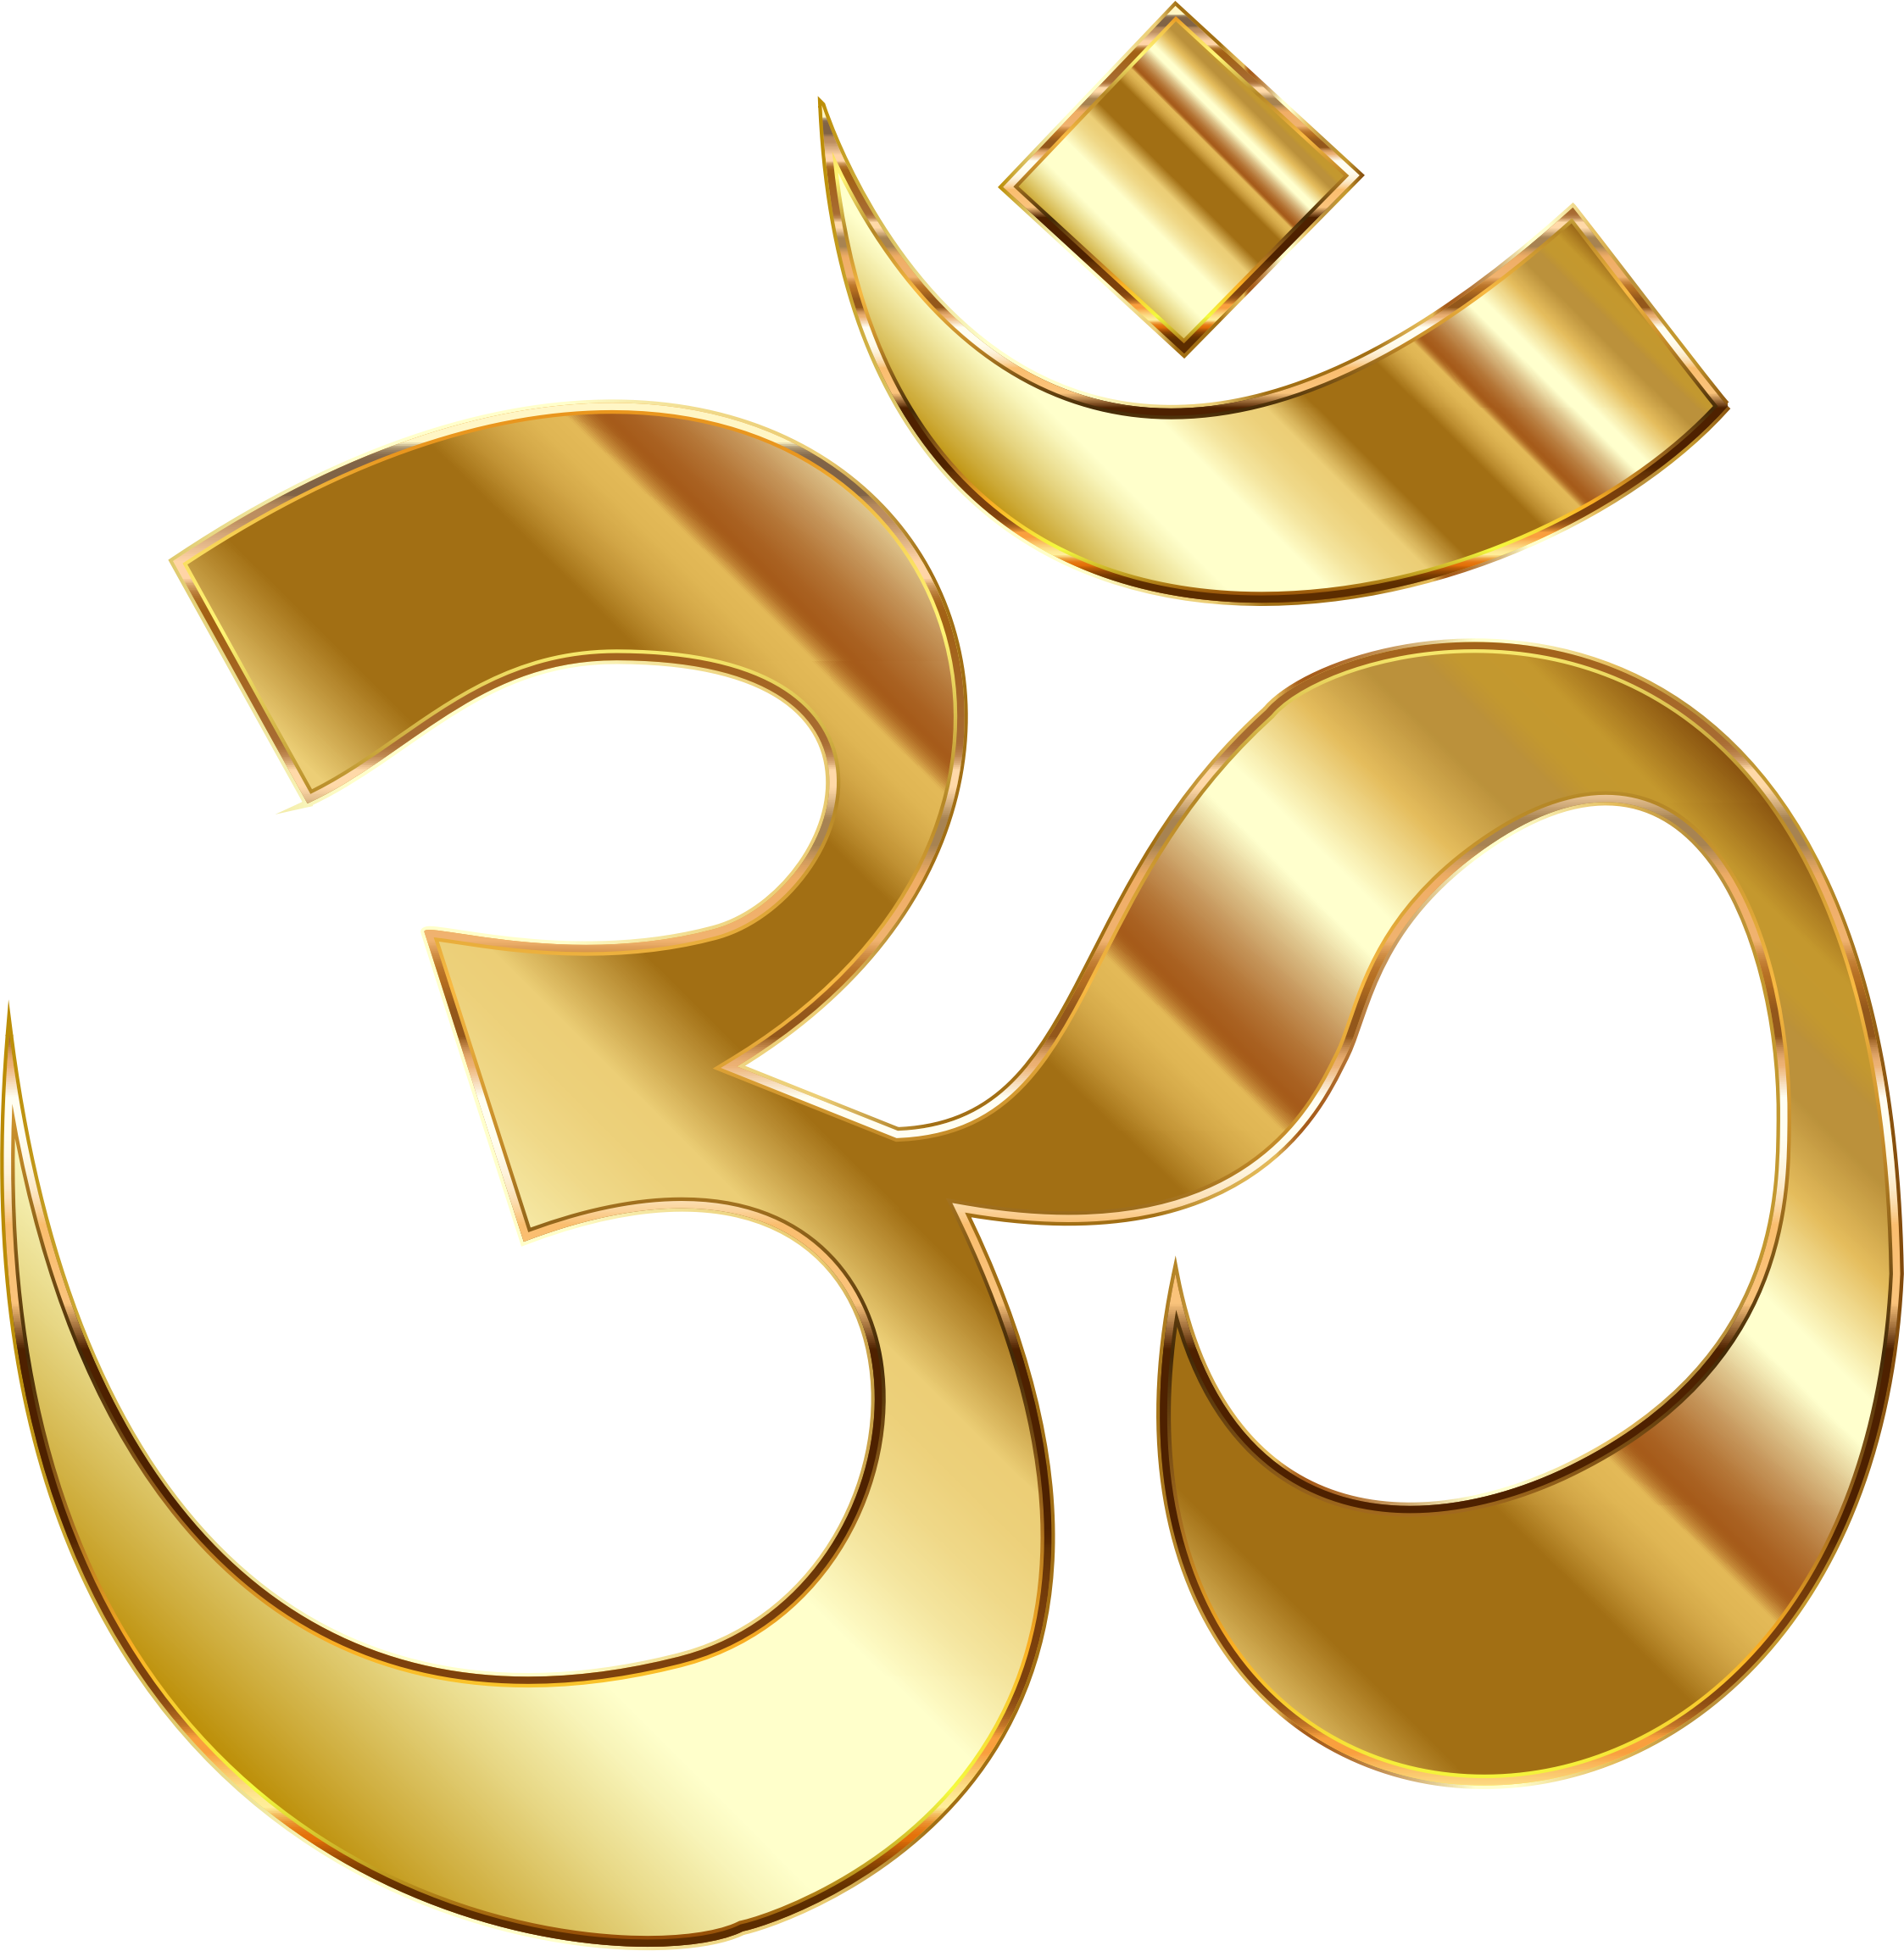 Day 9 a place to call om yoga drop in classes wellness day 9 a place to call om yoga drop in classes wellness studio relax rejuvenate mountains biocorpaavc Images